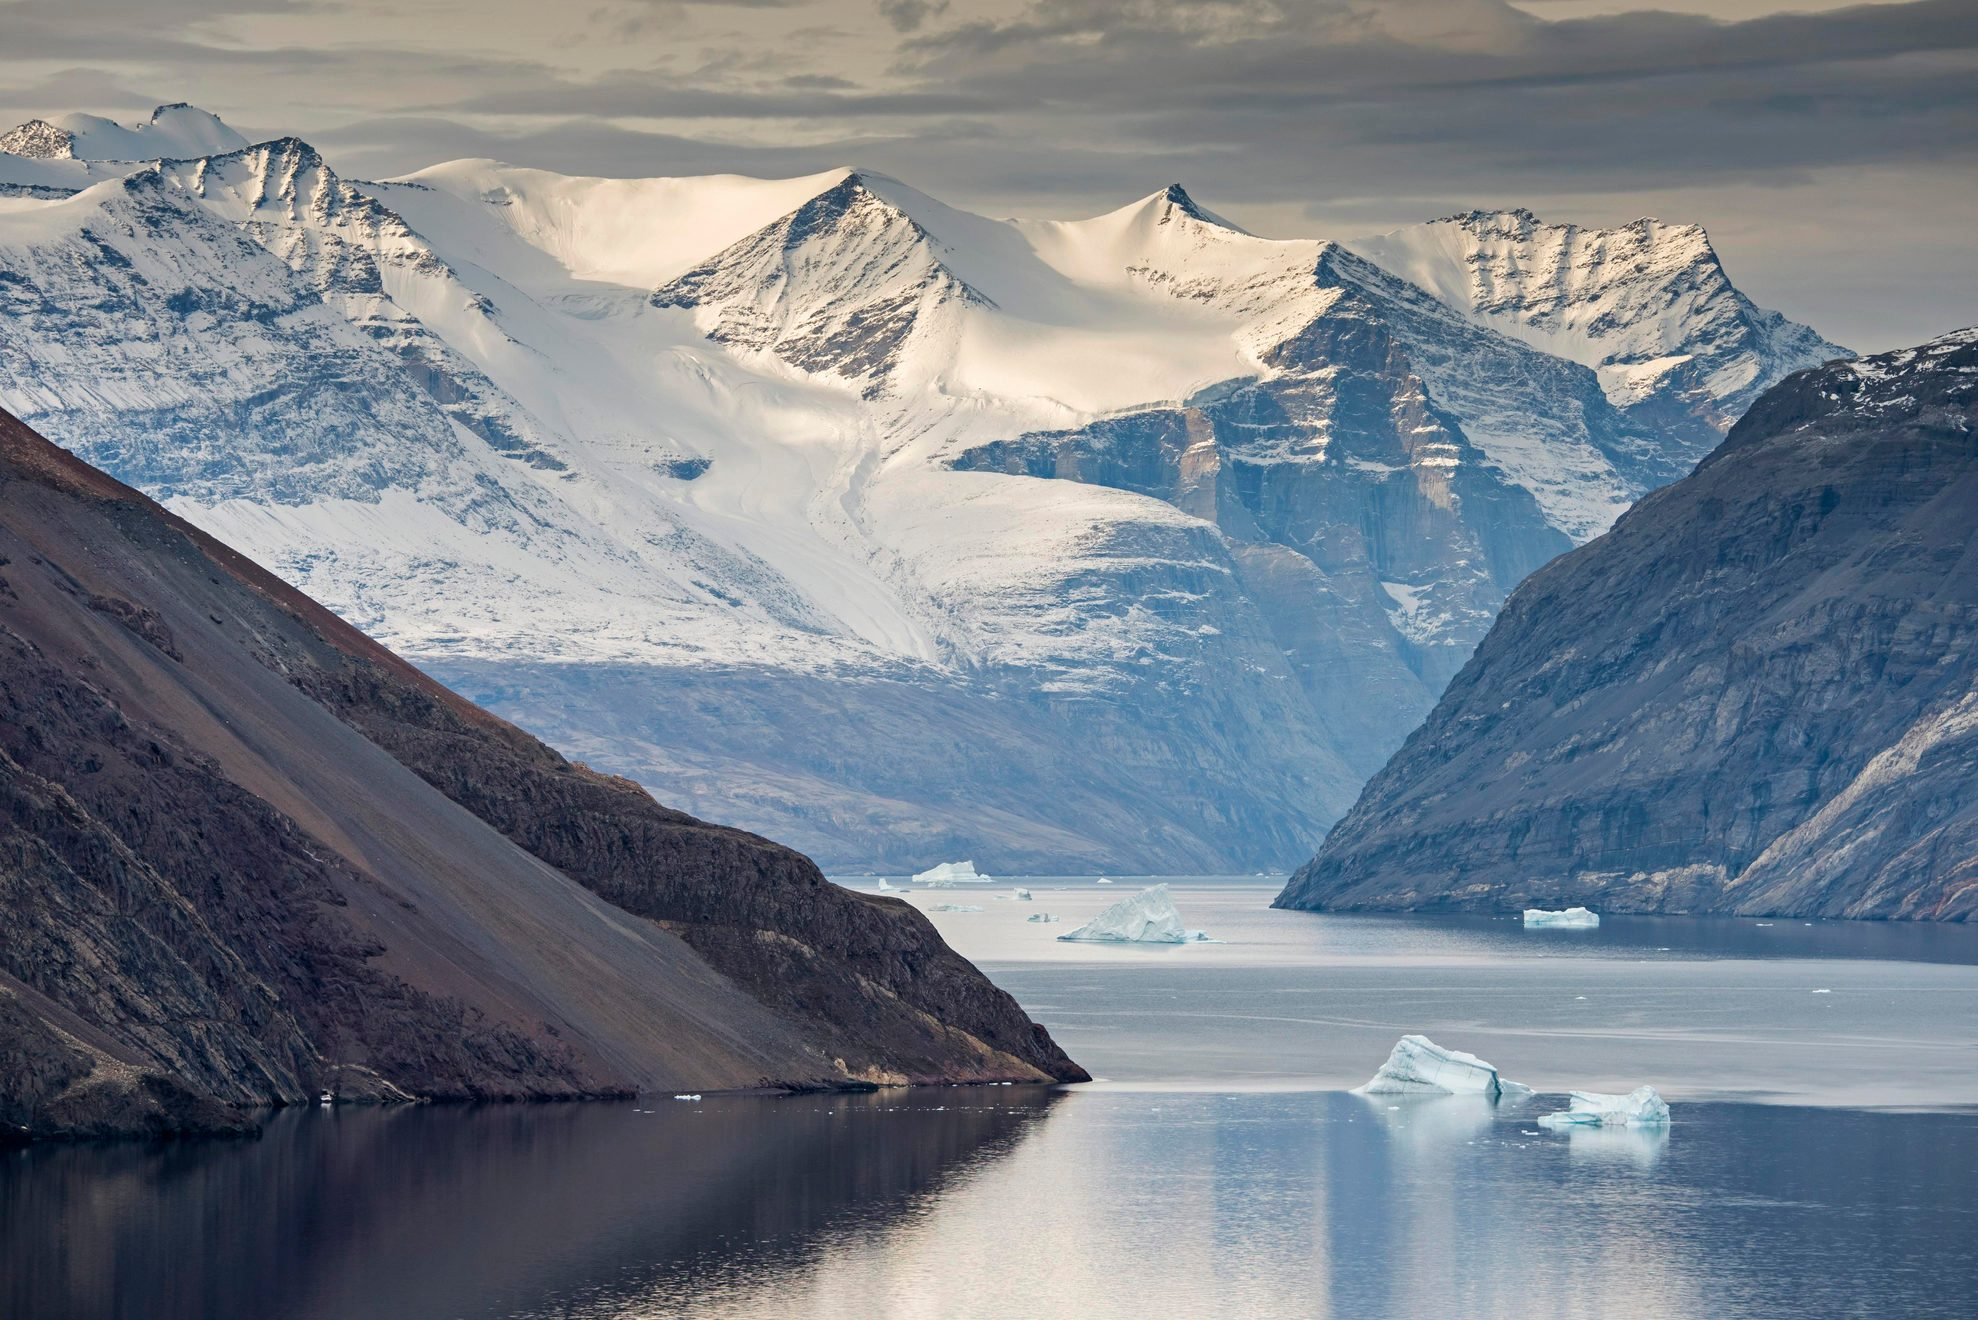 Mountain slopes and snowy mountains, icebergs in the Blomsterbugten, Kejser Franz Joseph Fjord, Northeast Greenland National Park, Greenland